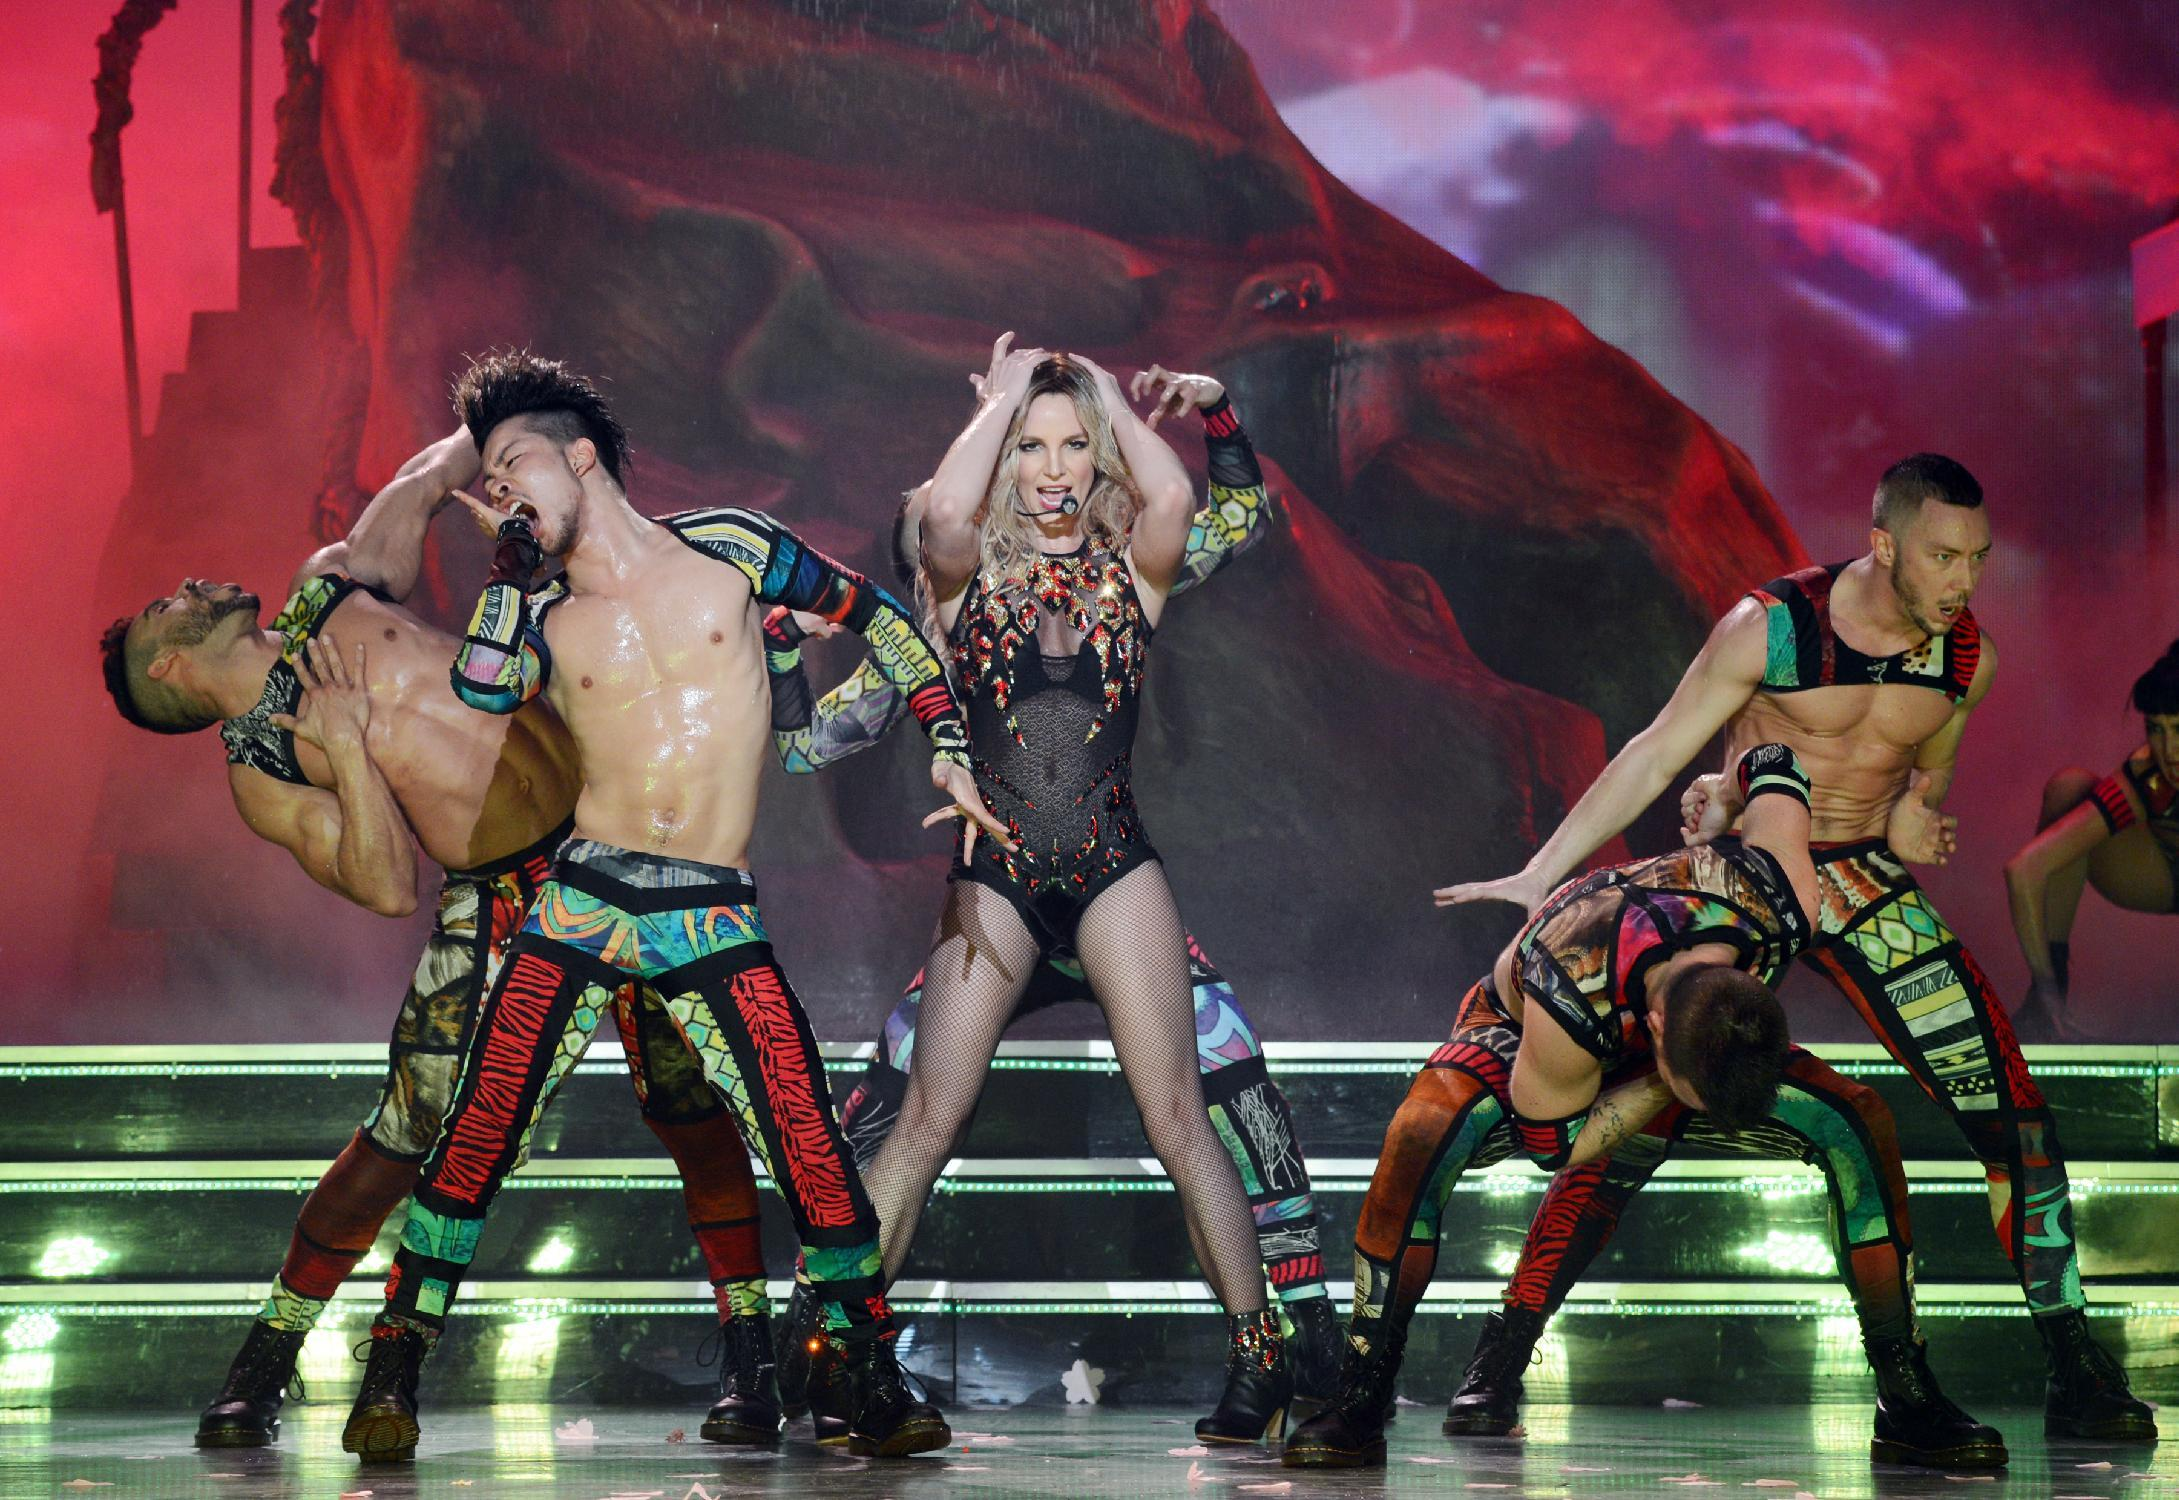 """In this photo provided by Caesars Entertainment, Britney Spears rehearses """"Britney: Piece of Me"""" at Planet Hollywood Resort & Casino on Thursday, Dec. 26, 2013, in Las Vegas. Spears began her two-year a Las Vegas casino residency Friday. (AP Photo/Caesars Entertainment, Denise Truscello)"""